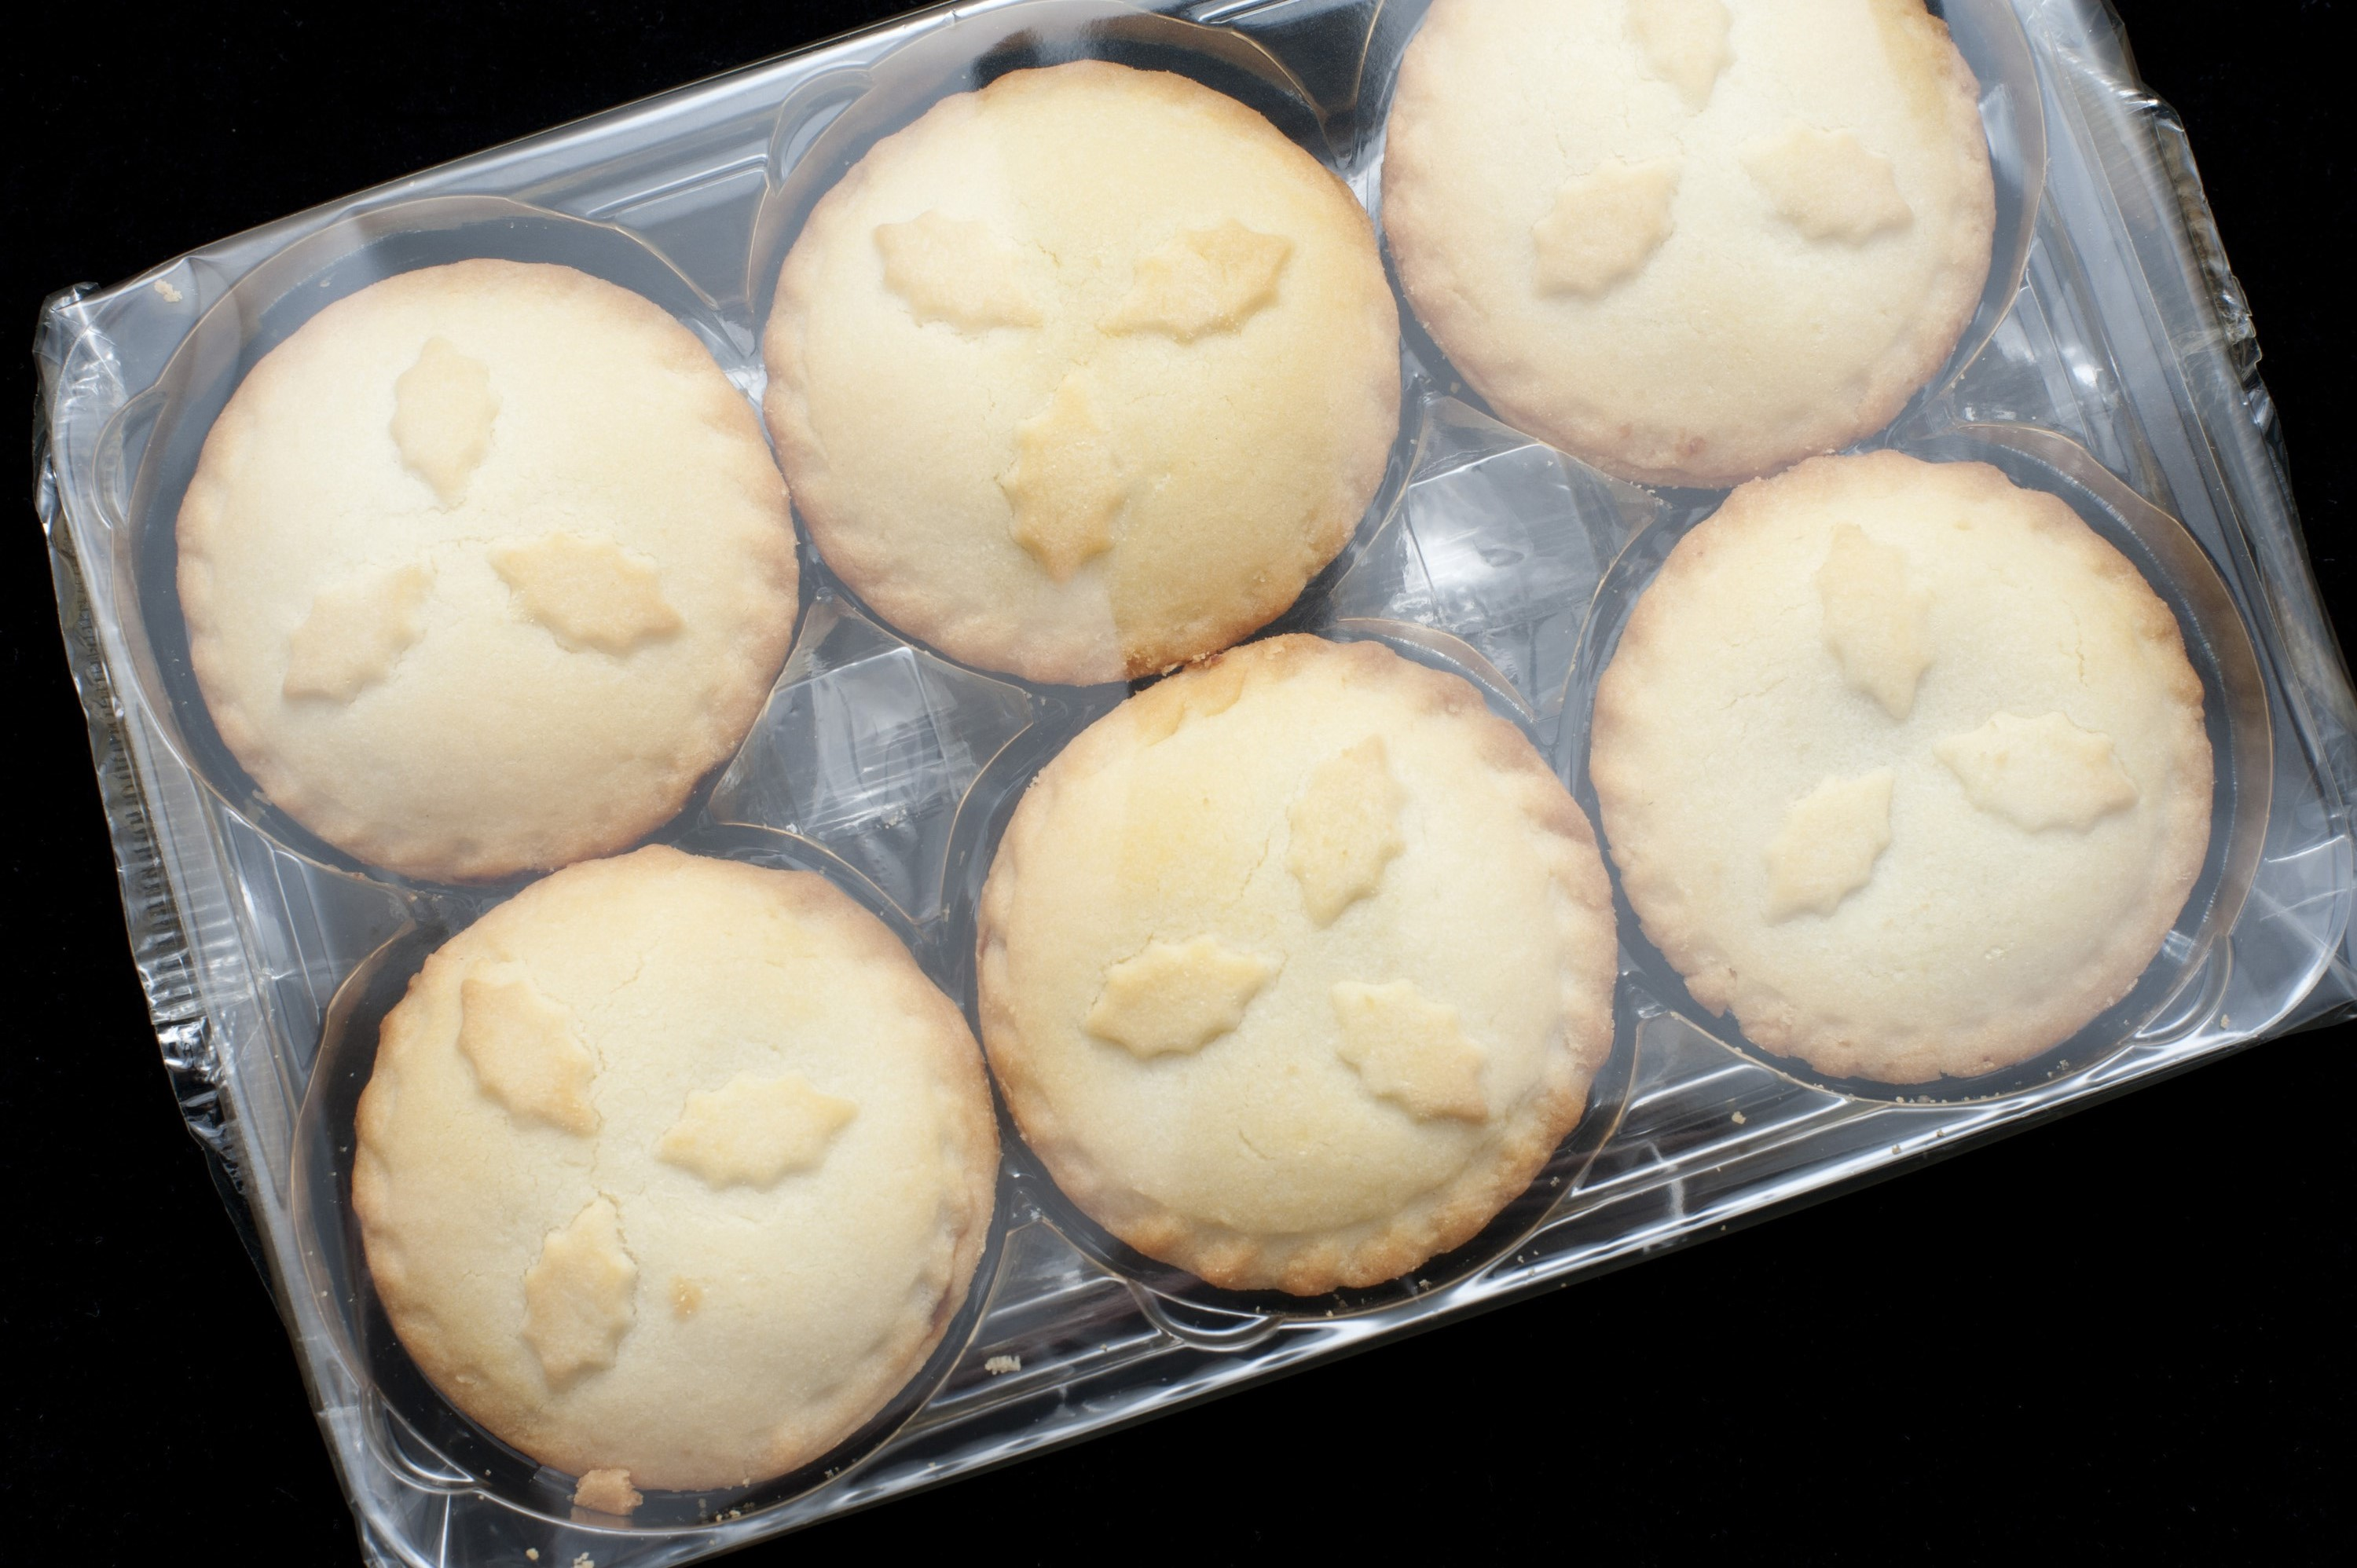 Festive fruity Christmas mince pies in their plastic packaging from the supermarket for a festive seasonal treat, overhead view